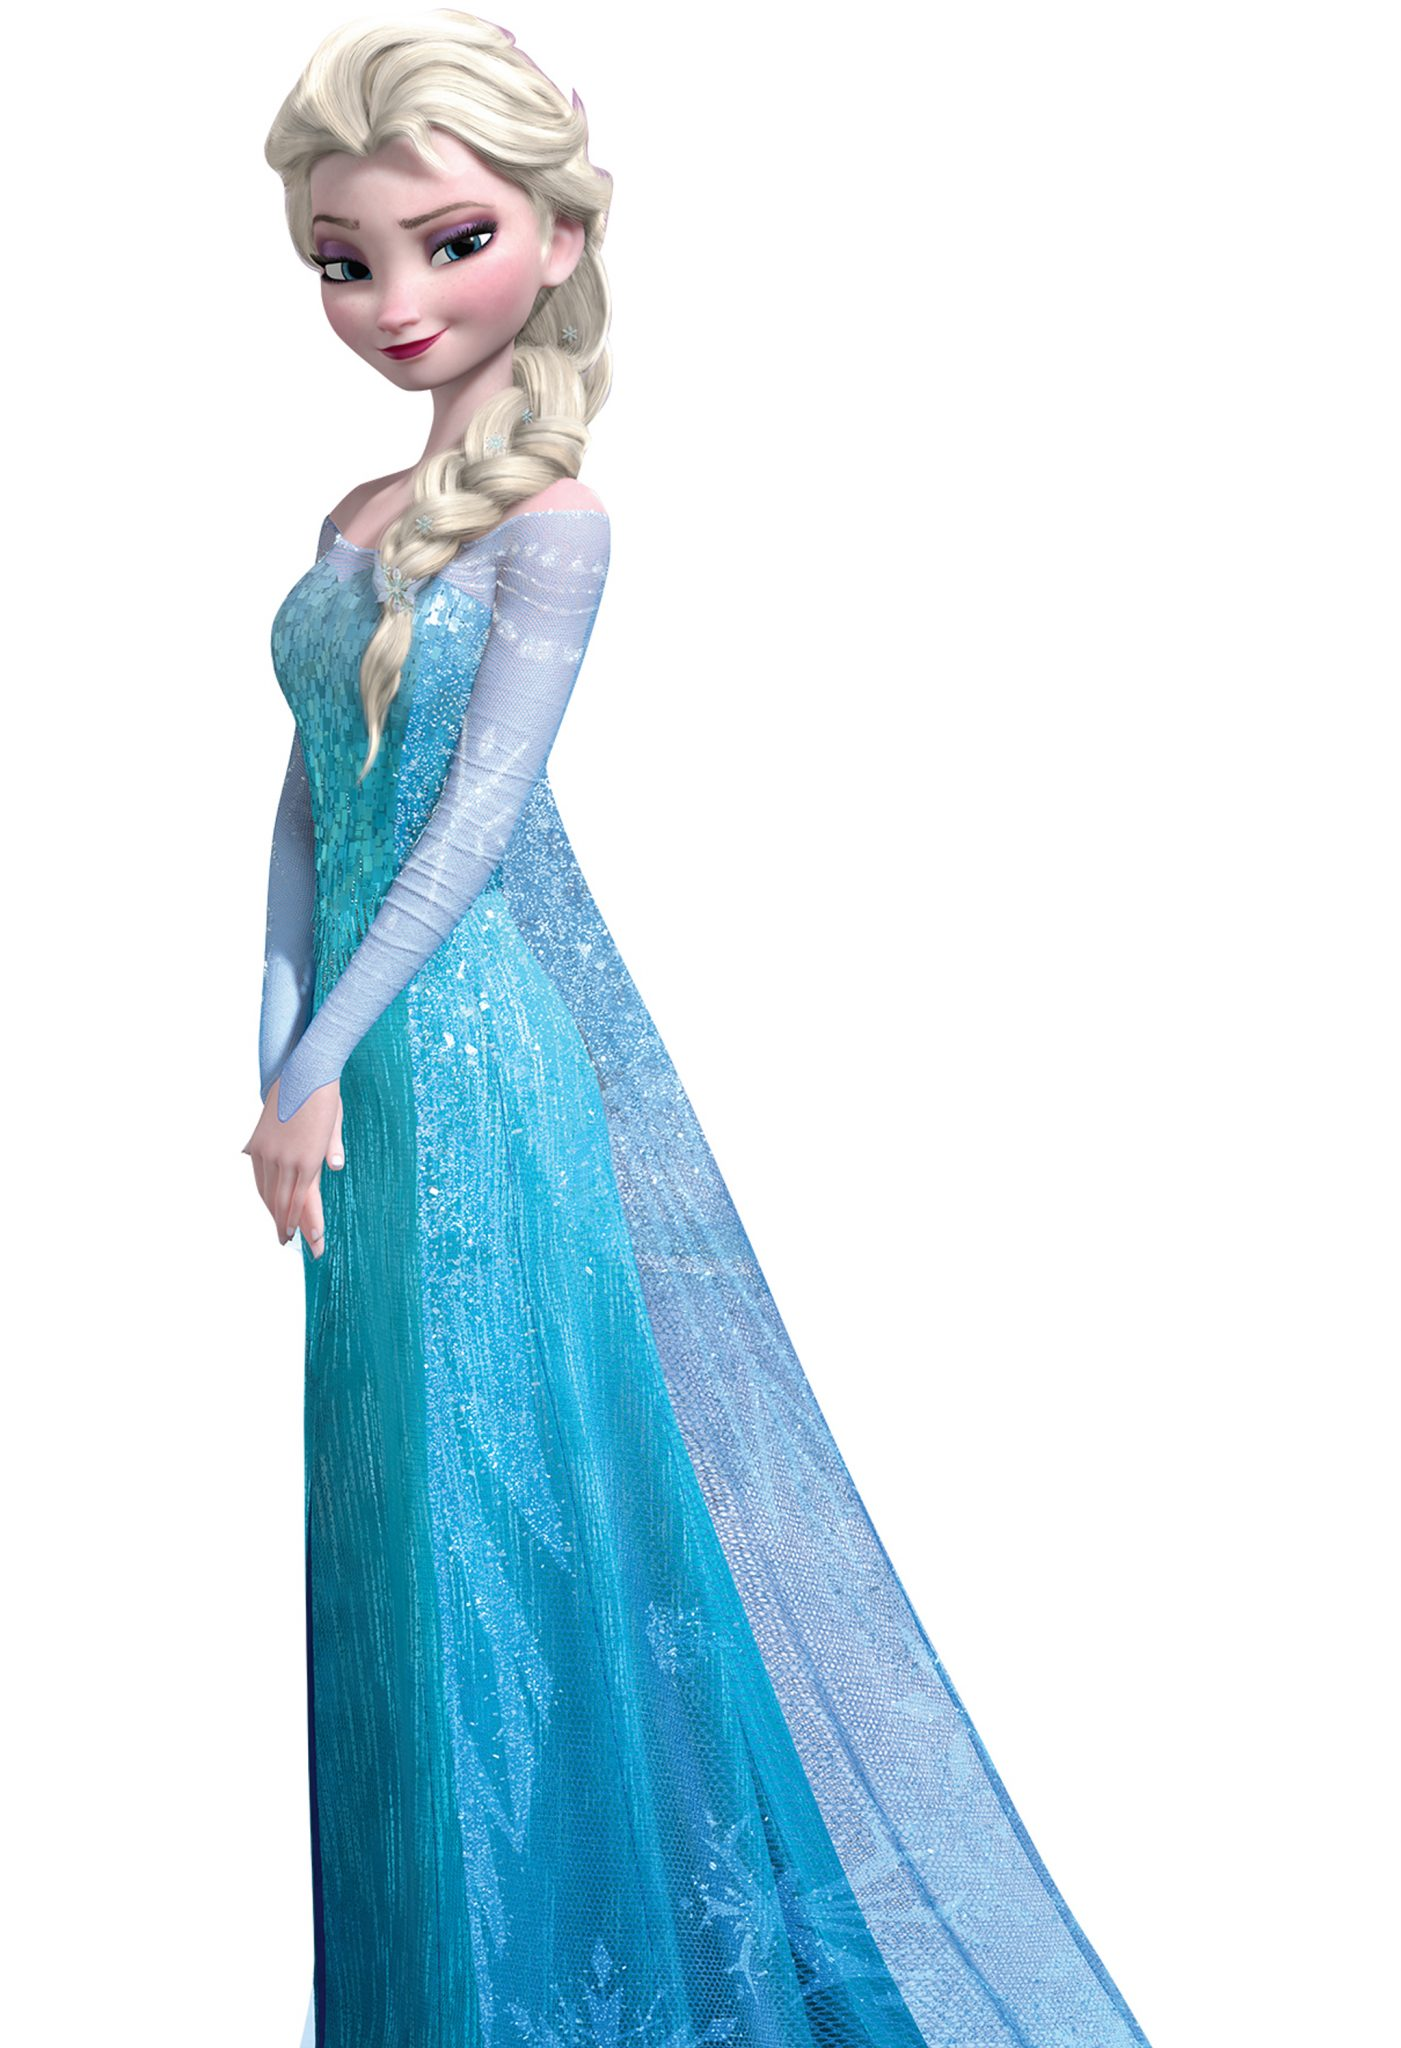 BEAUTY: ELSA HAIR HOW-TO & COSTUME